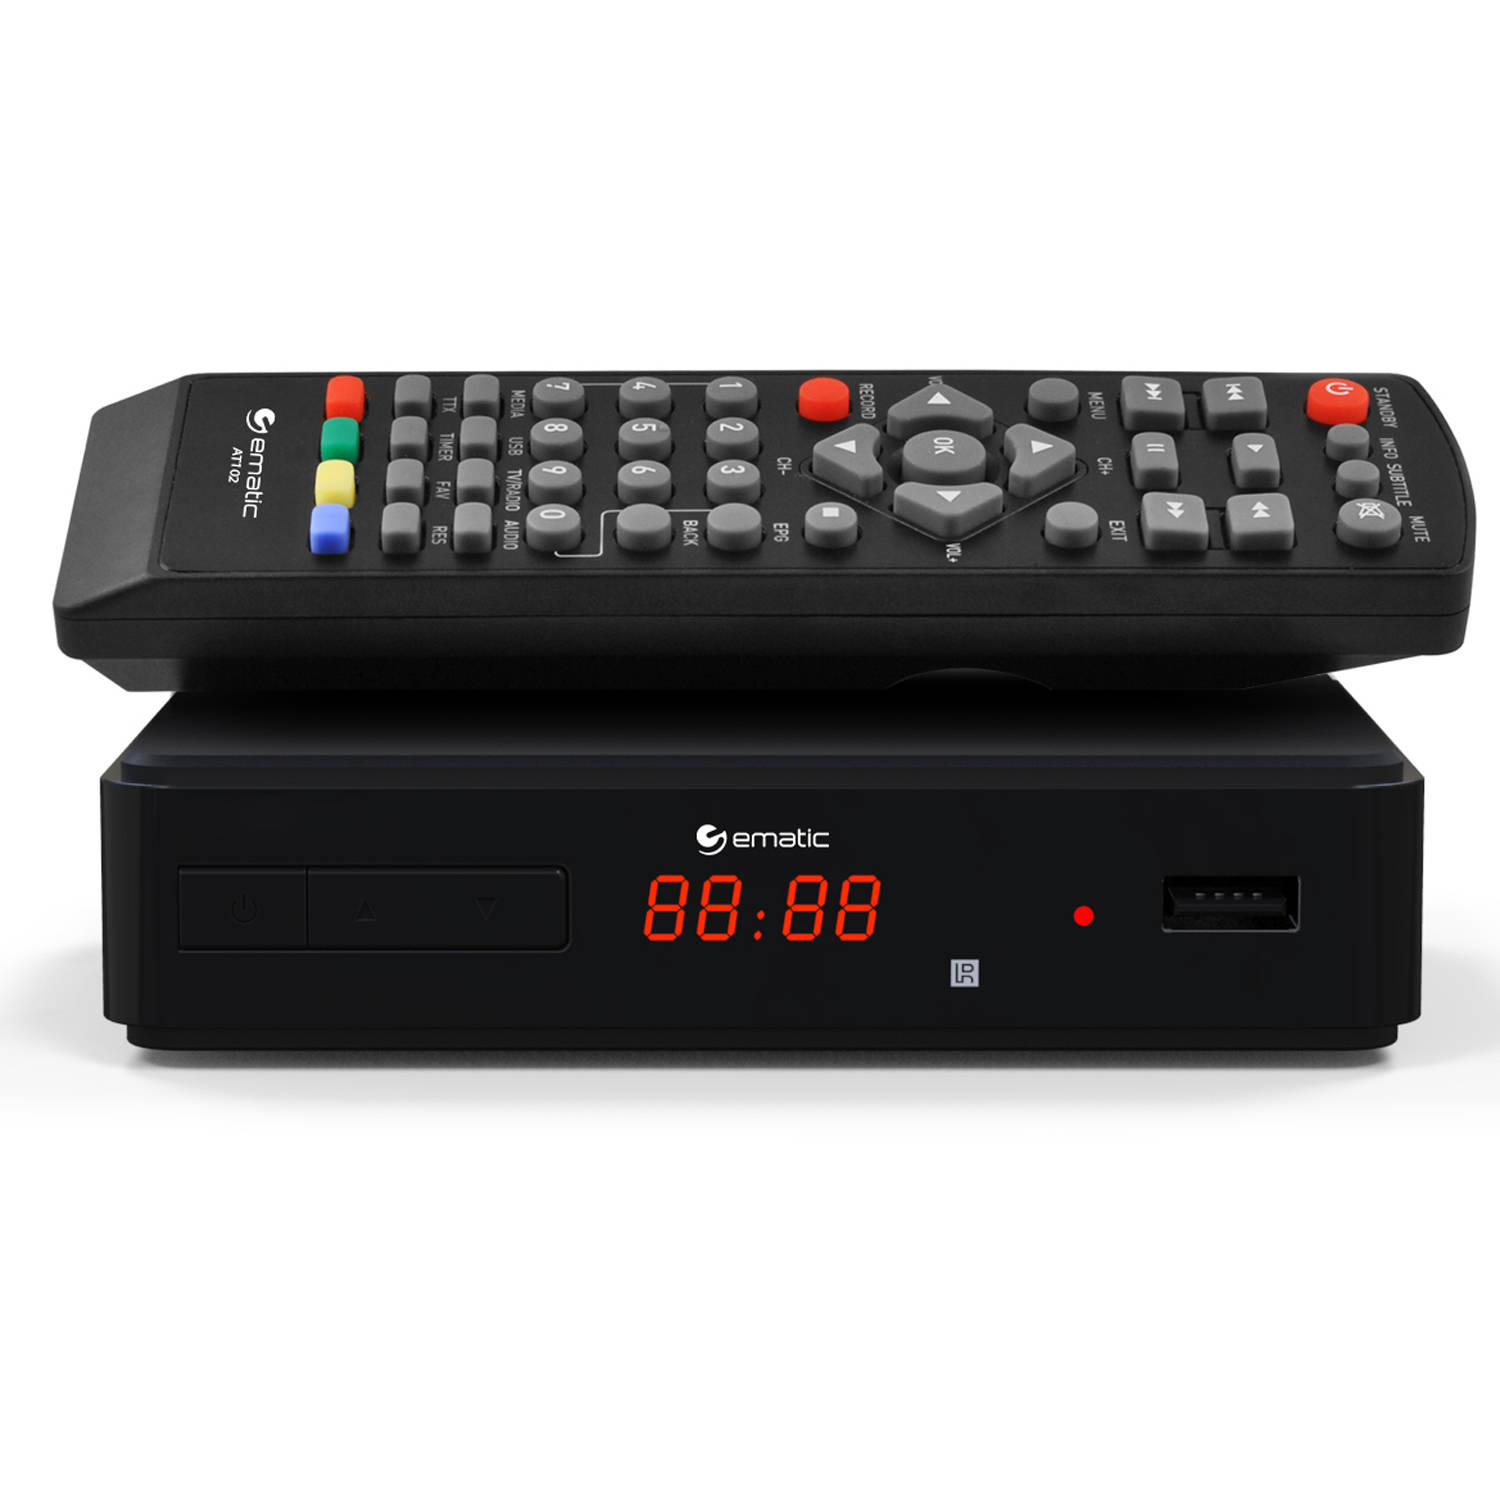 Ematic AT102 Digital TV HD Converter Box with LED Display and Recording Capabilities